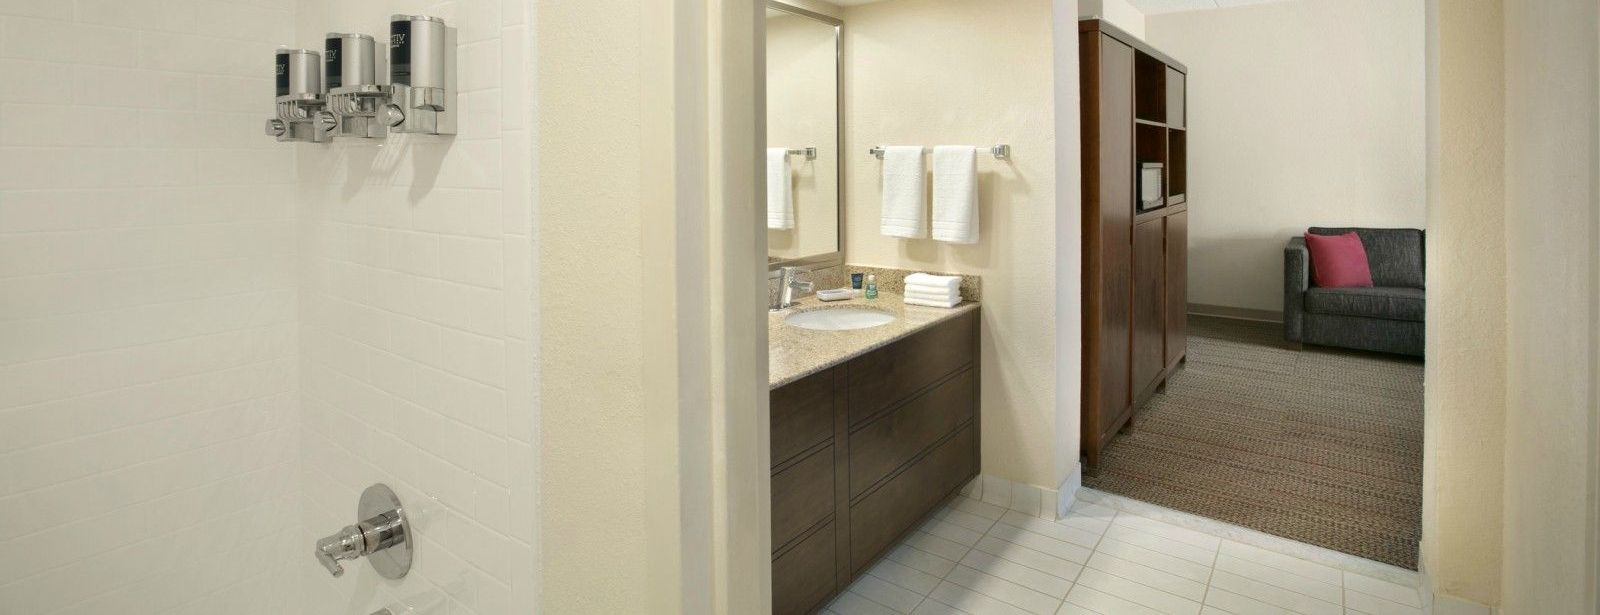 North Raleigh Accommodations - King Suite Guest Bathroom